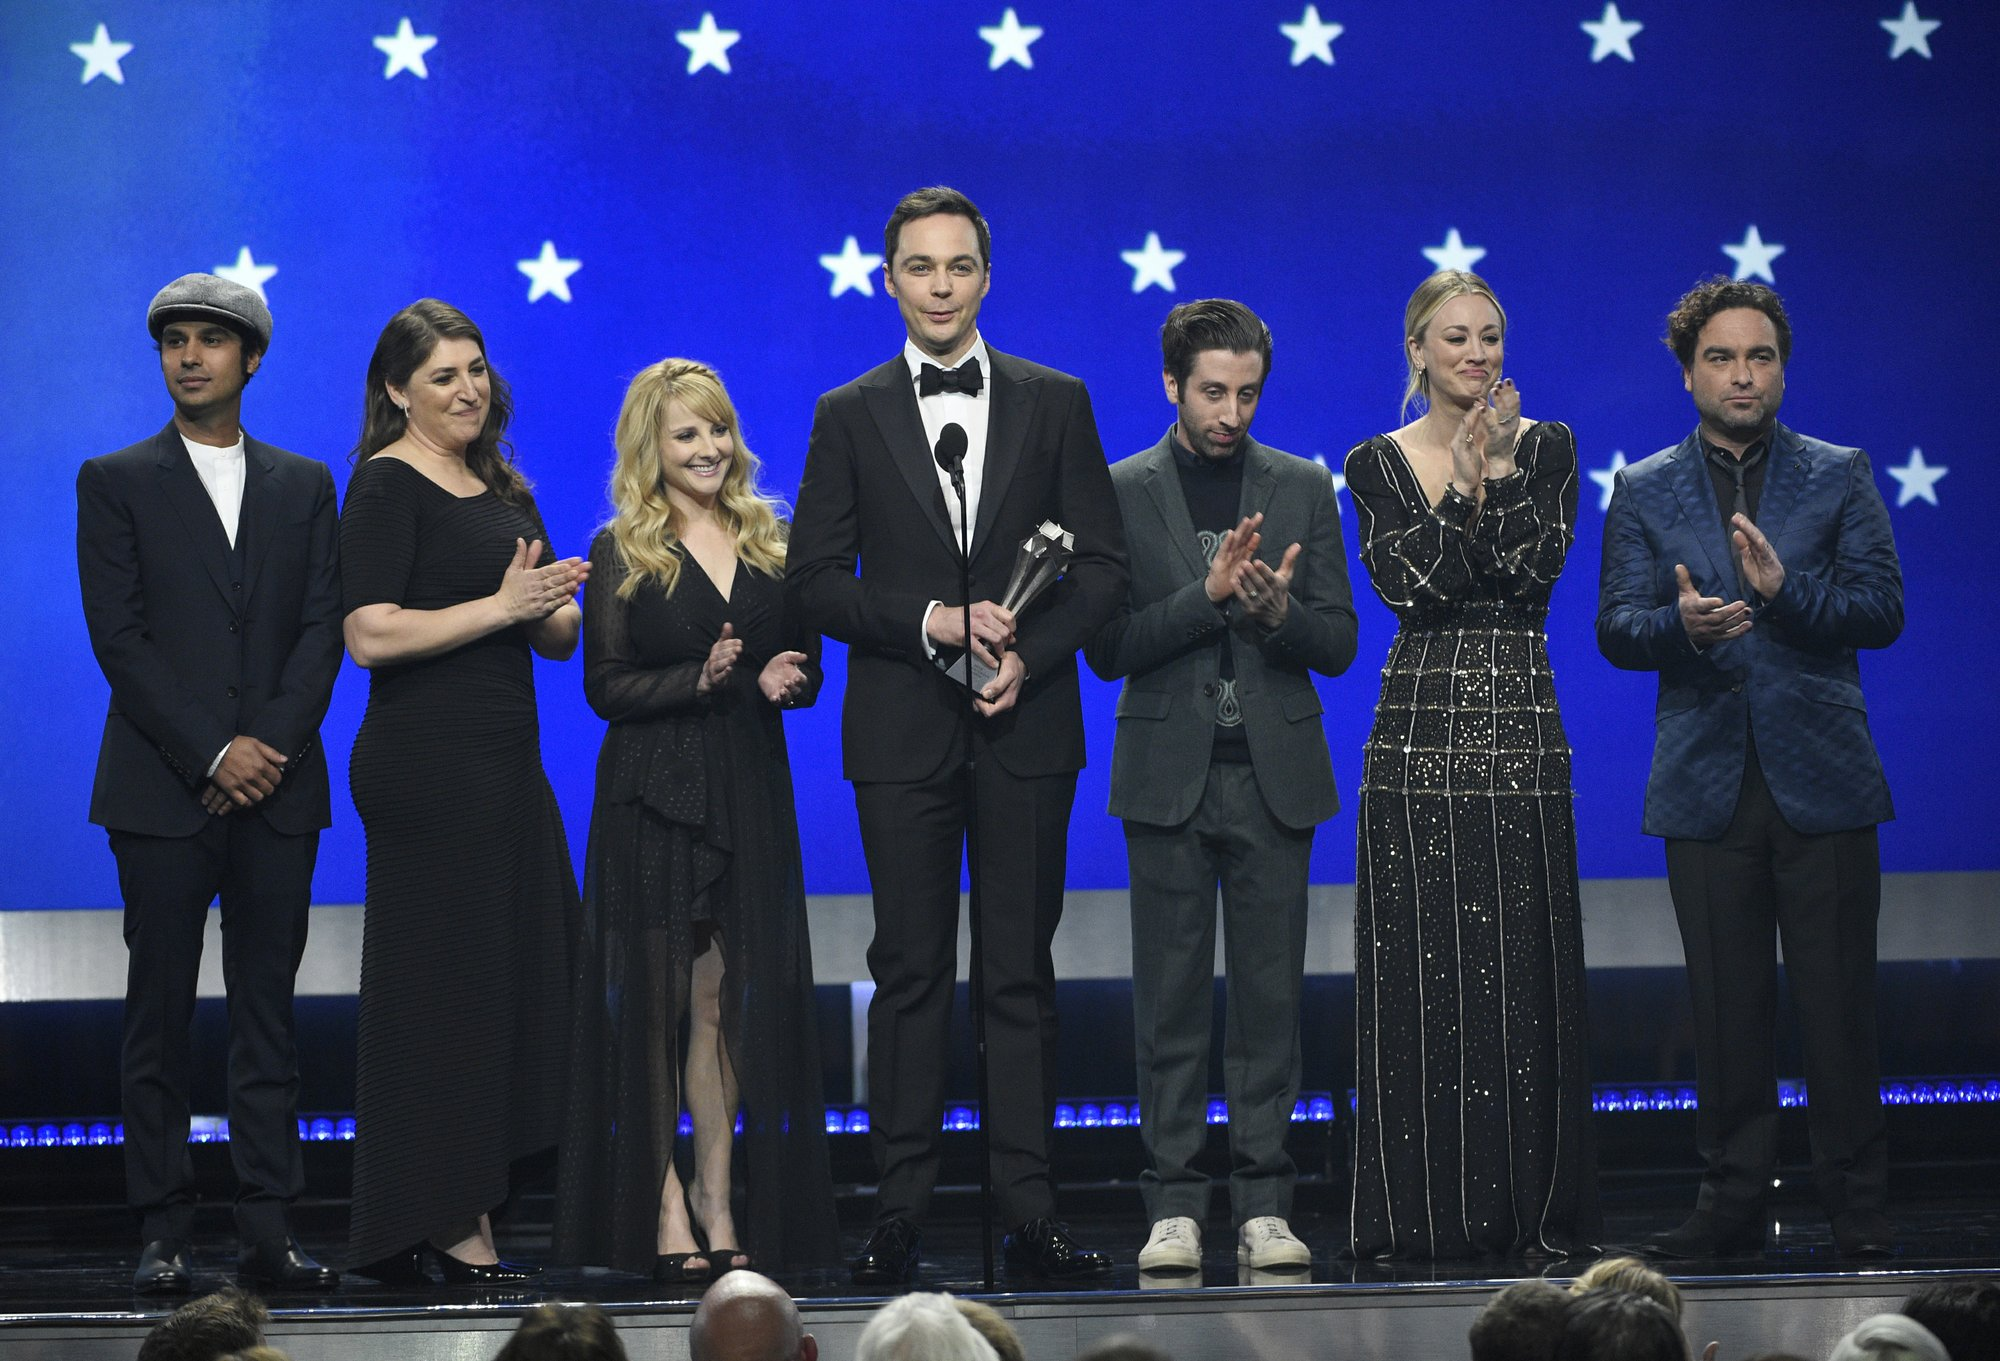 'Big Bang Theory' tops 'Game of Thrones' in weekly ratings